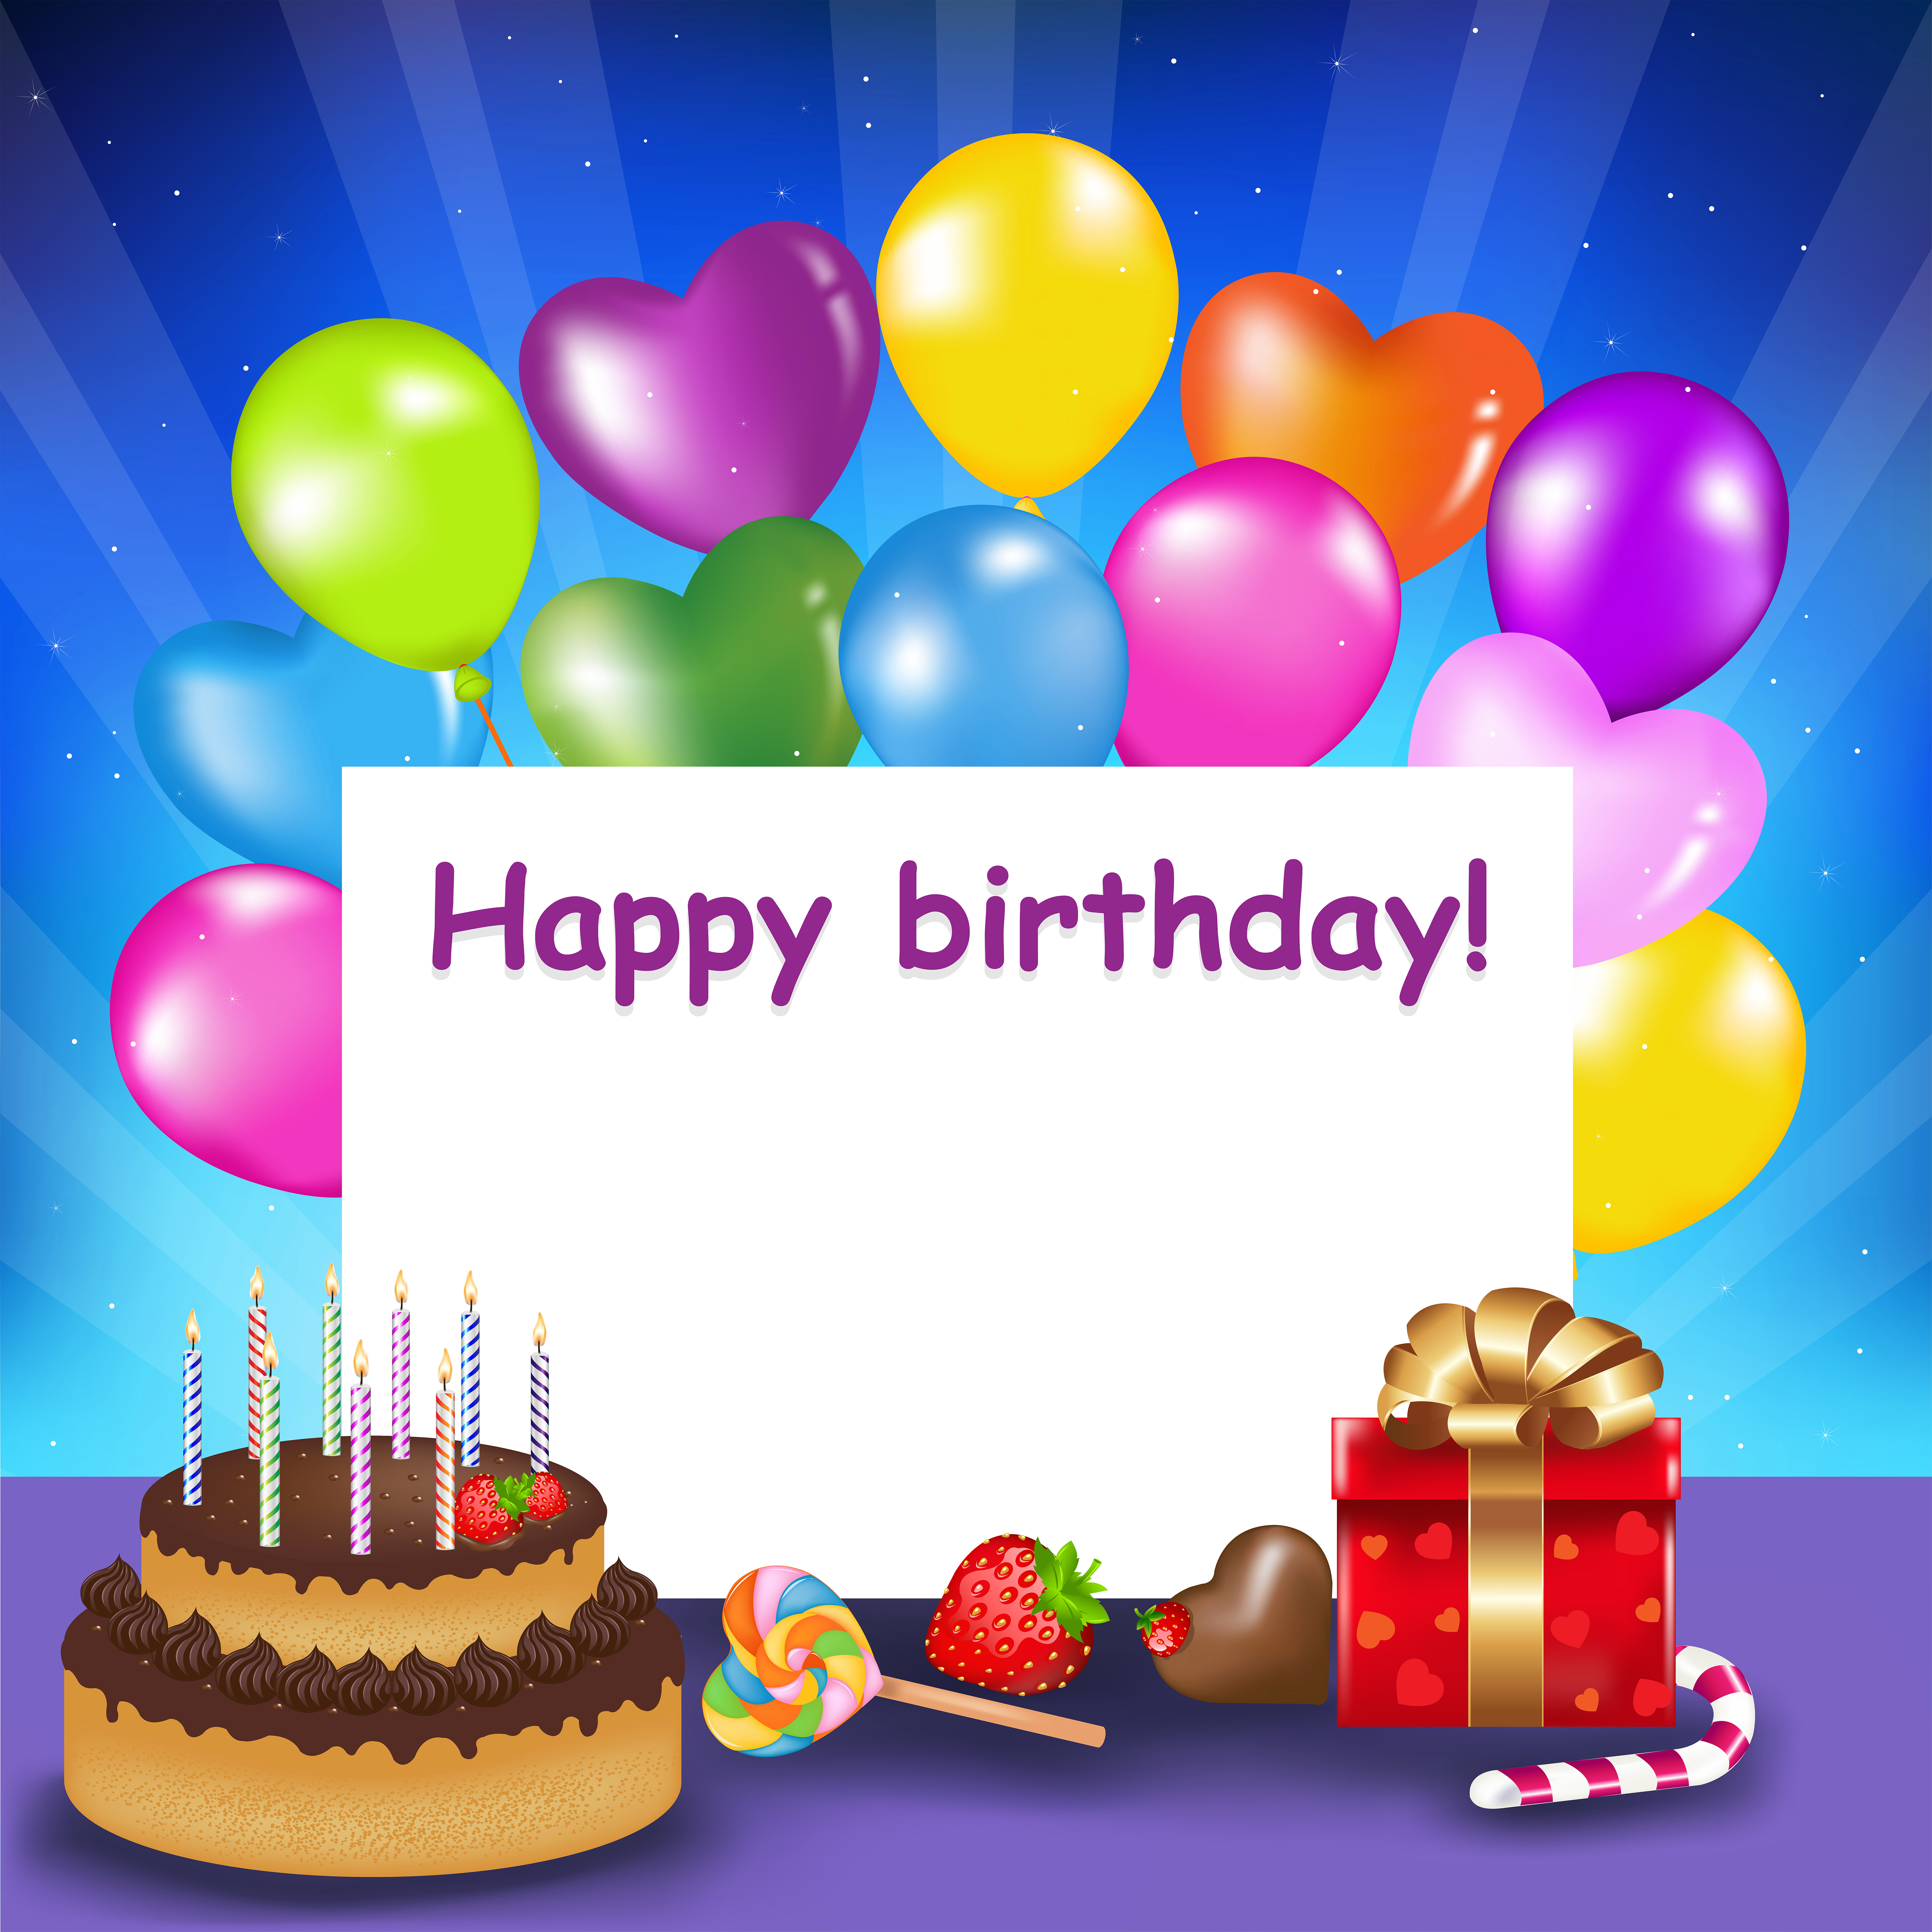 Happy Birthday Background with Cake and Balloons Gallery 6000x6000